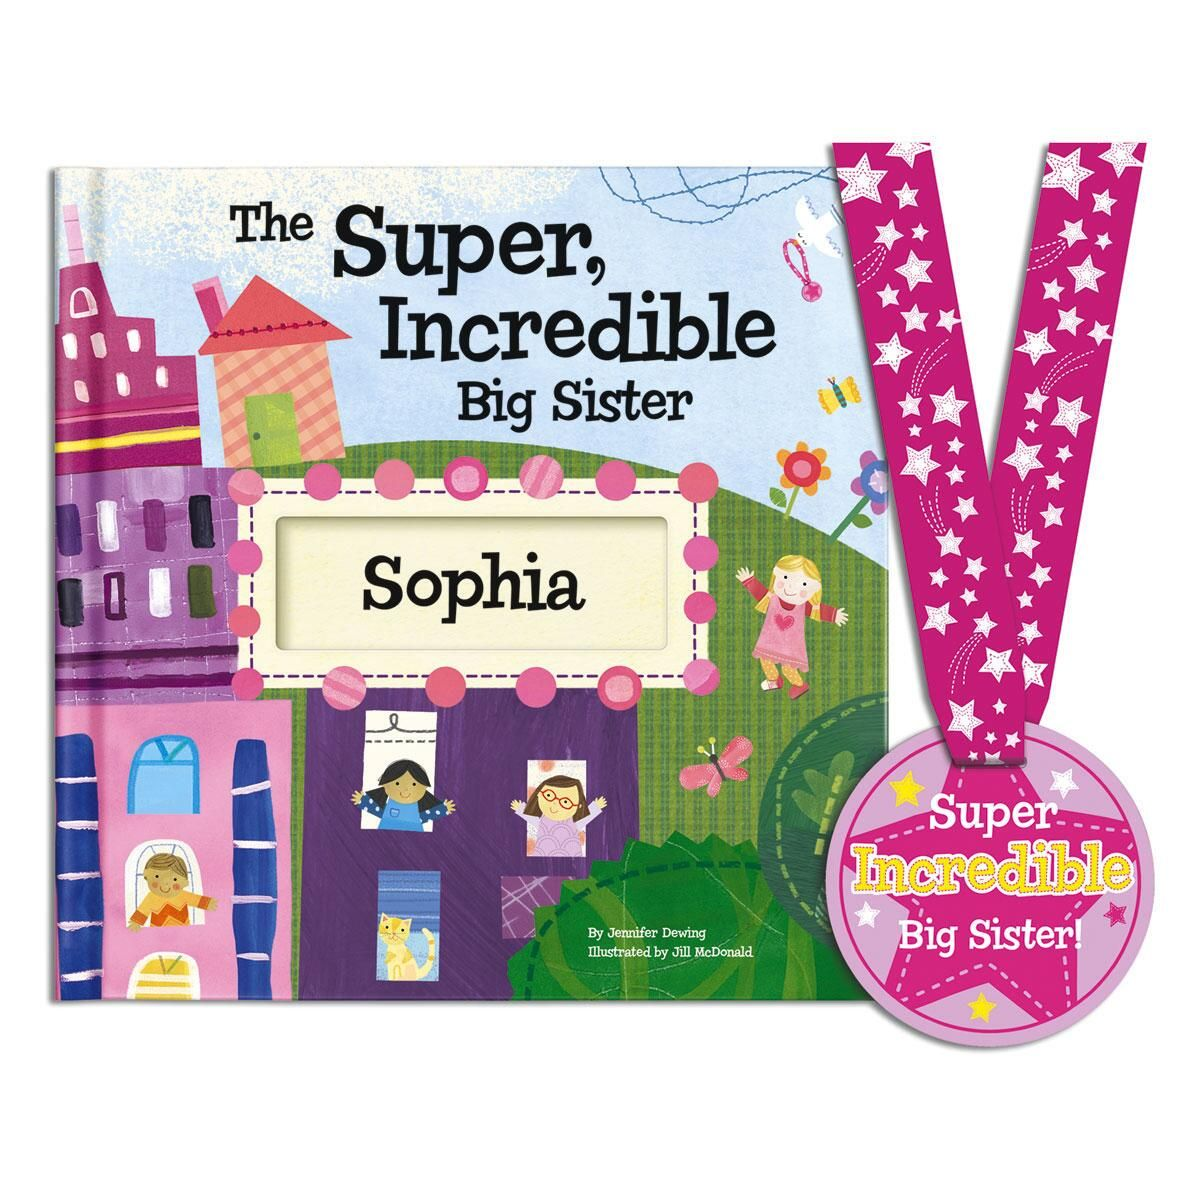 The Super Incredible Big Sister Personalized Storybook